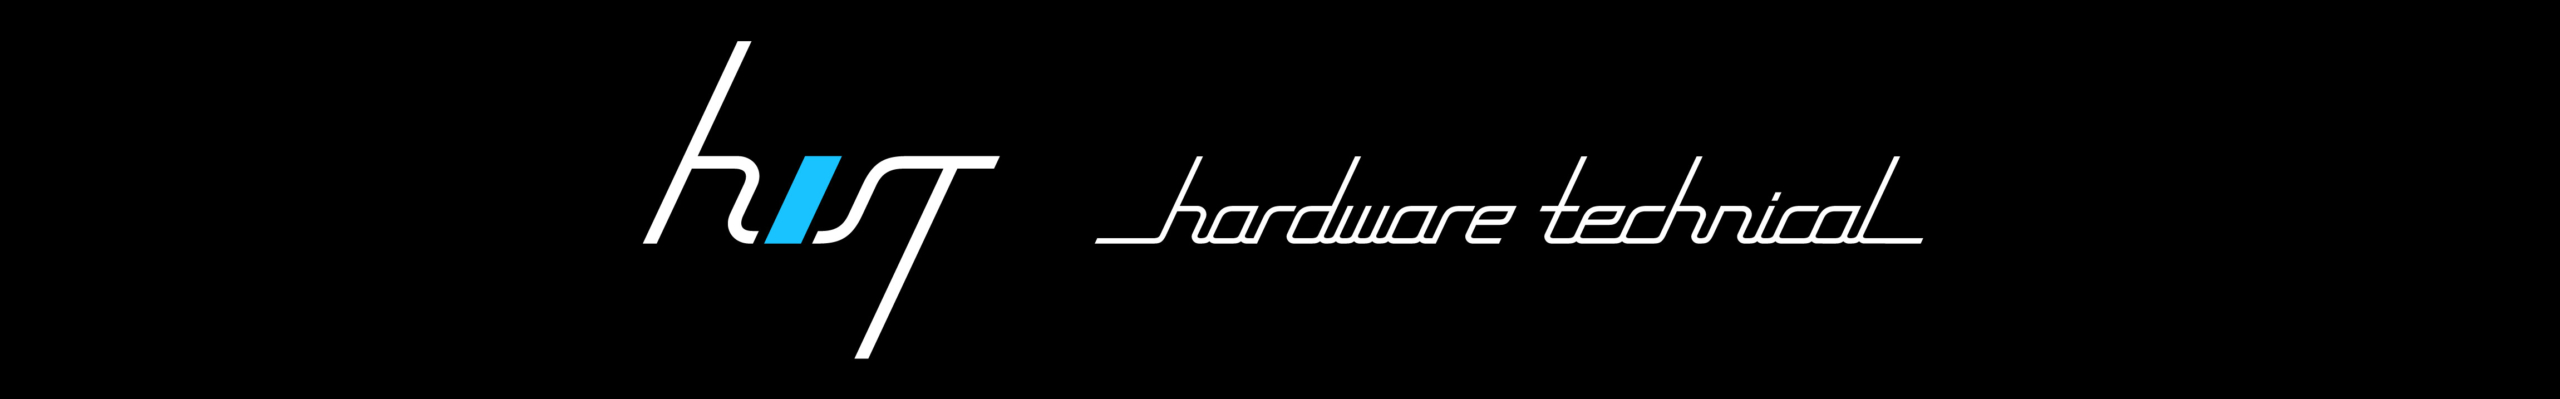 HARDWARE TECHNICAL